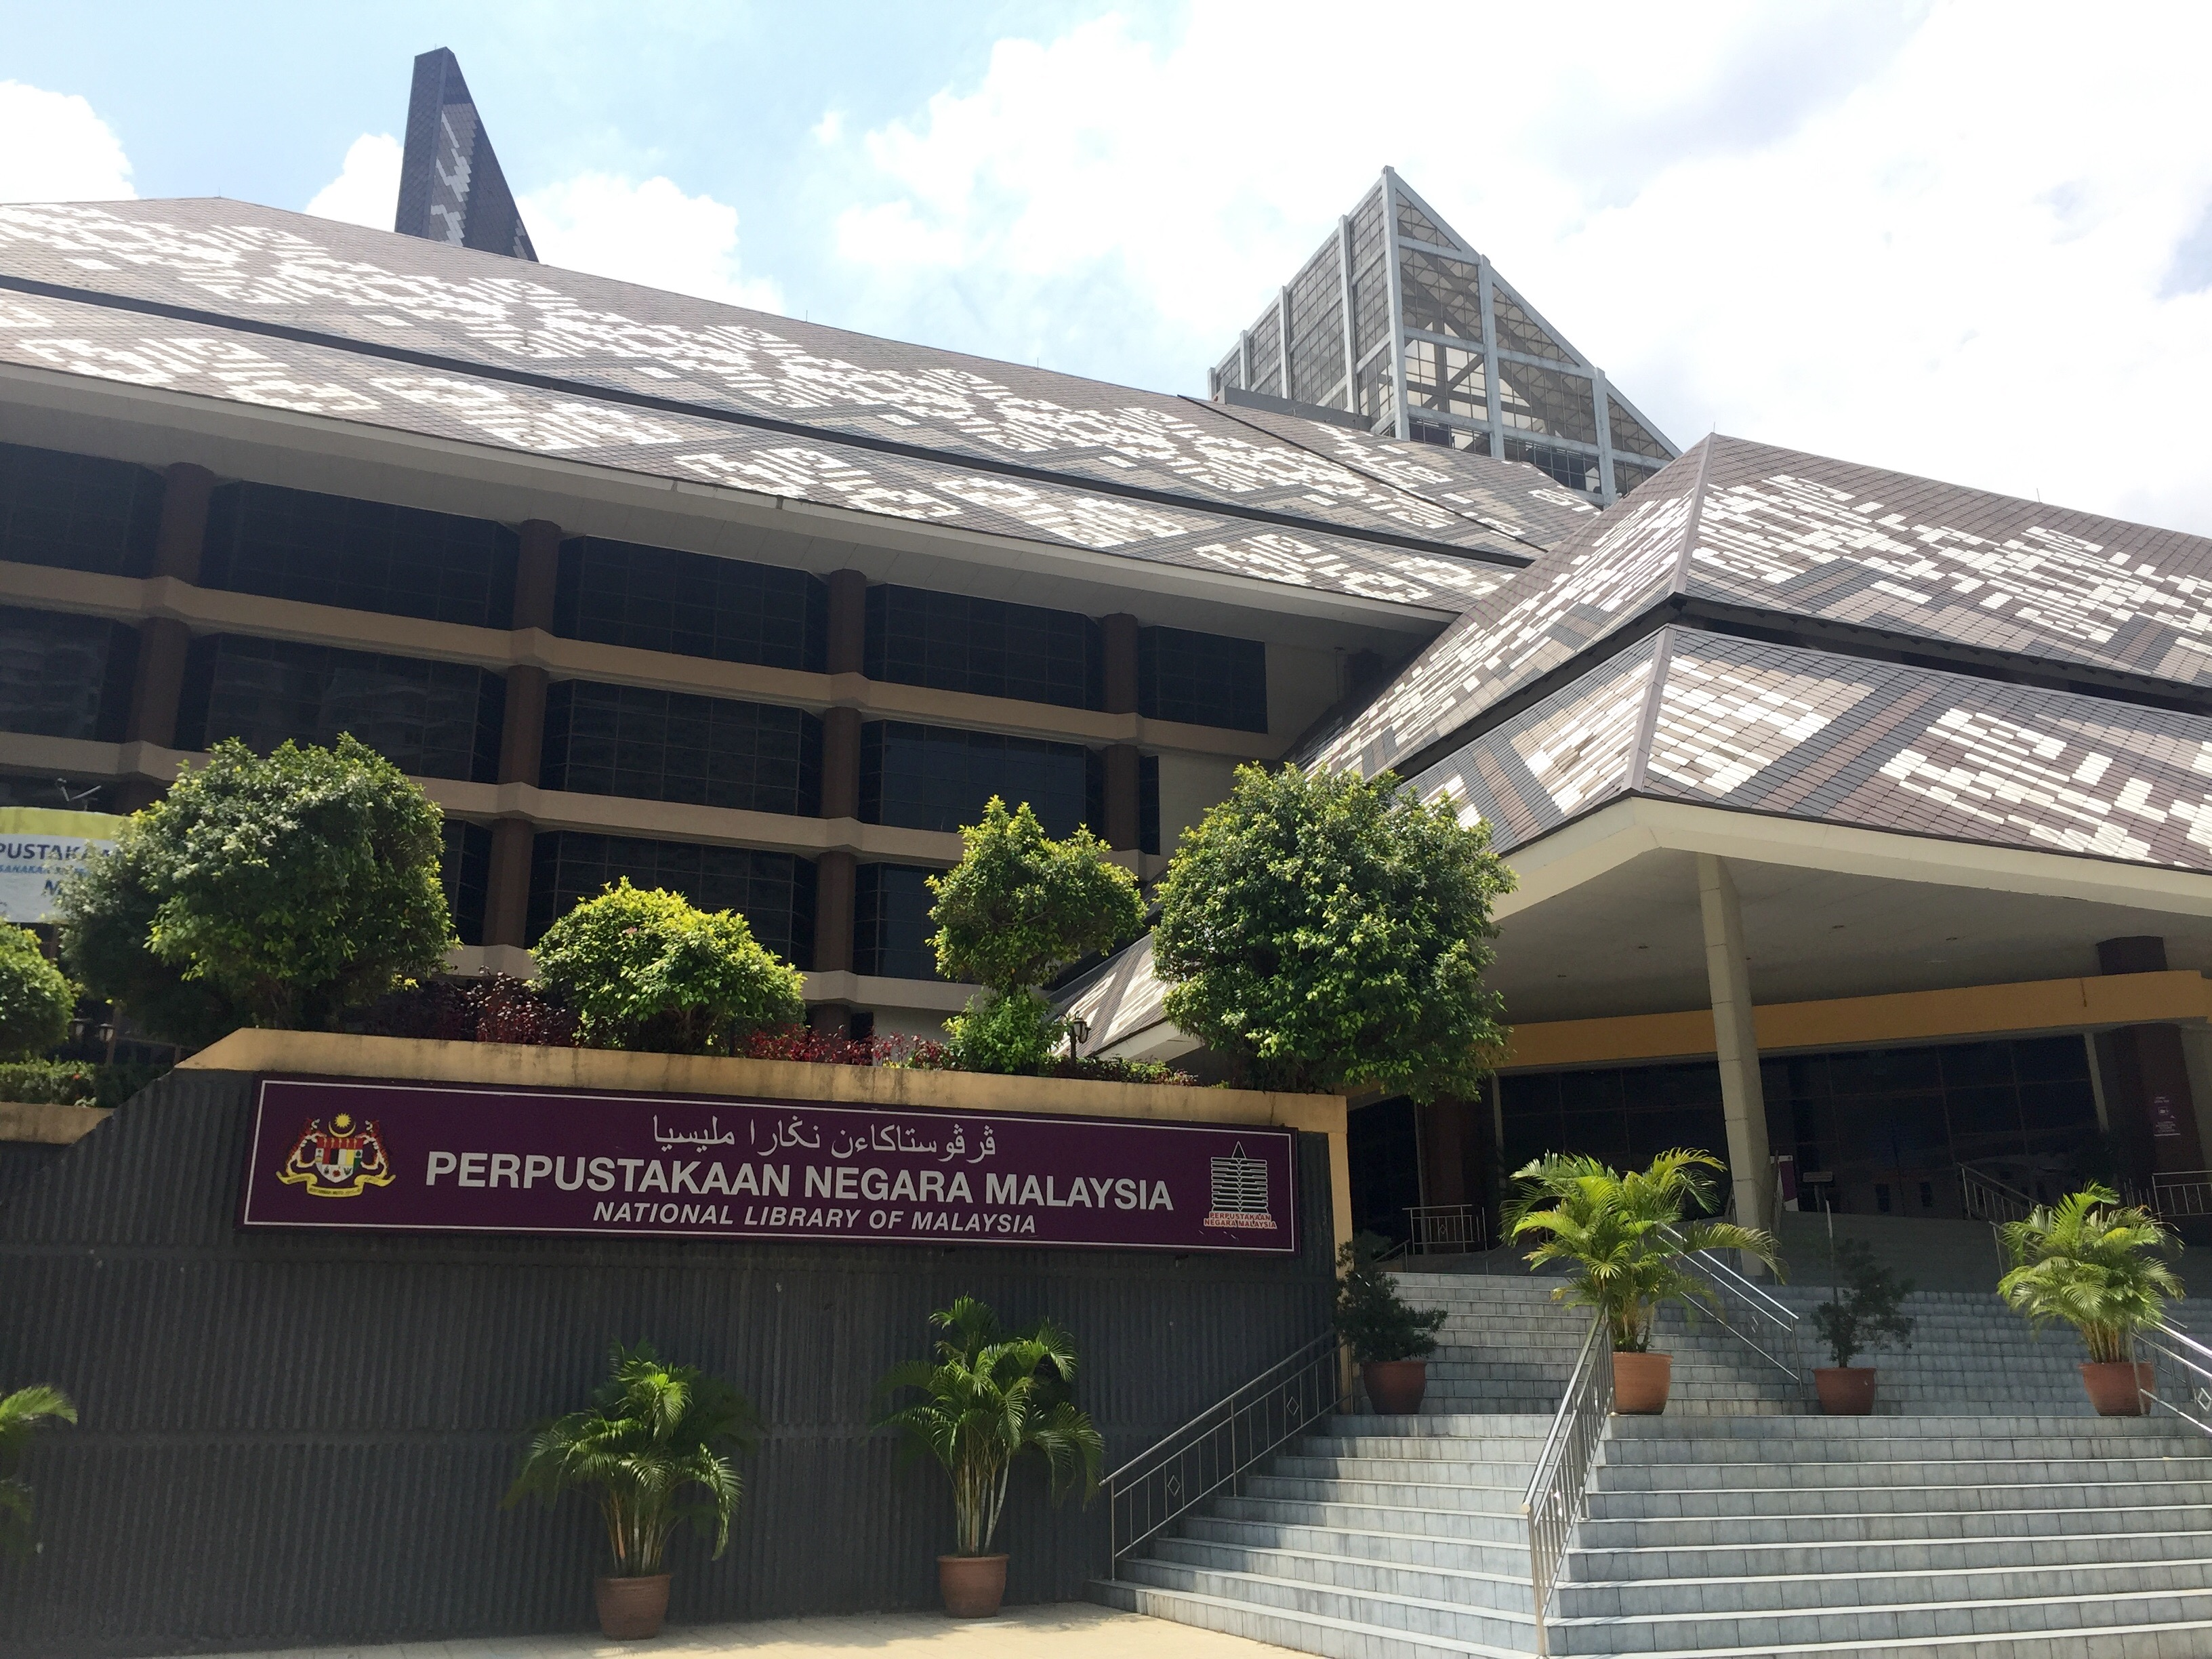 Have You Been To Perpustakaan Negara Malaysia Not Your Typical Tourist